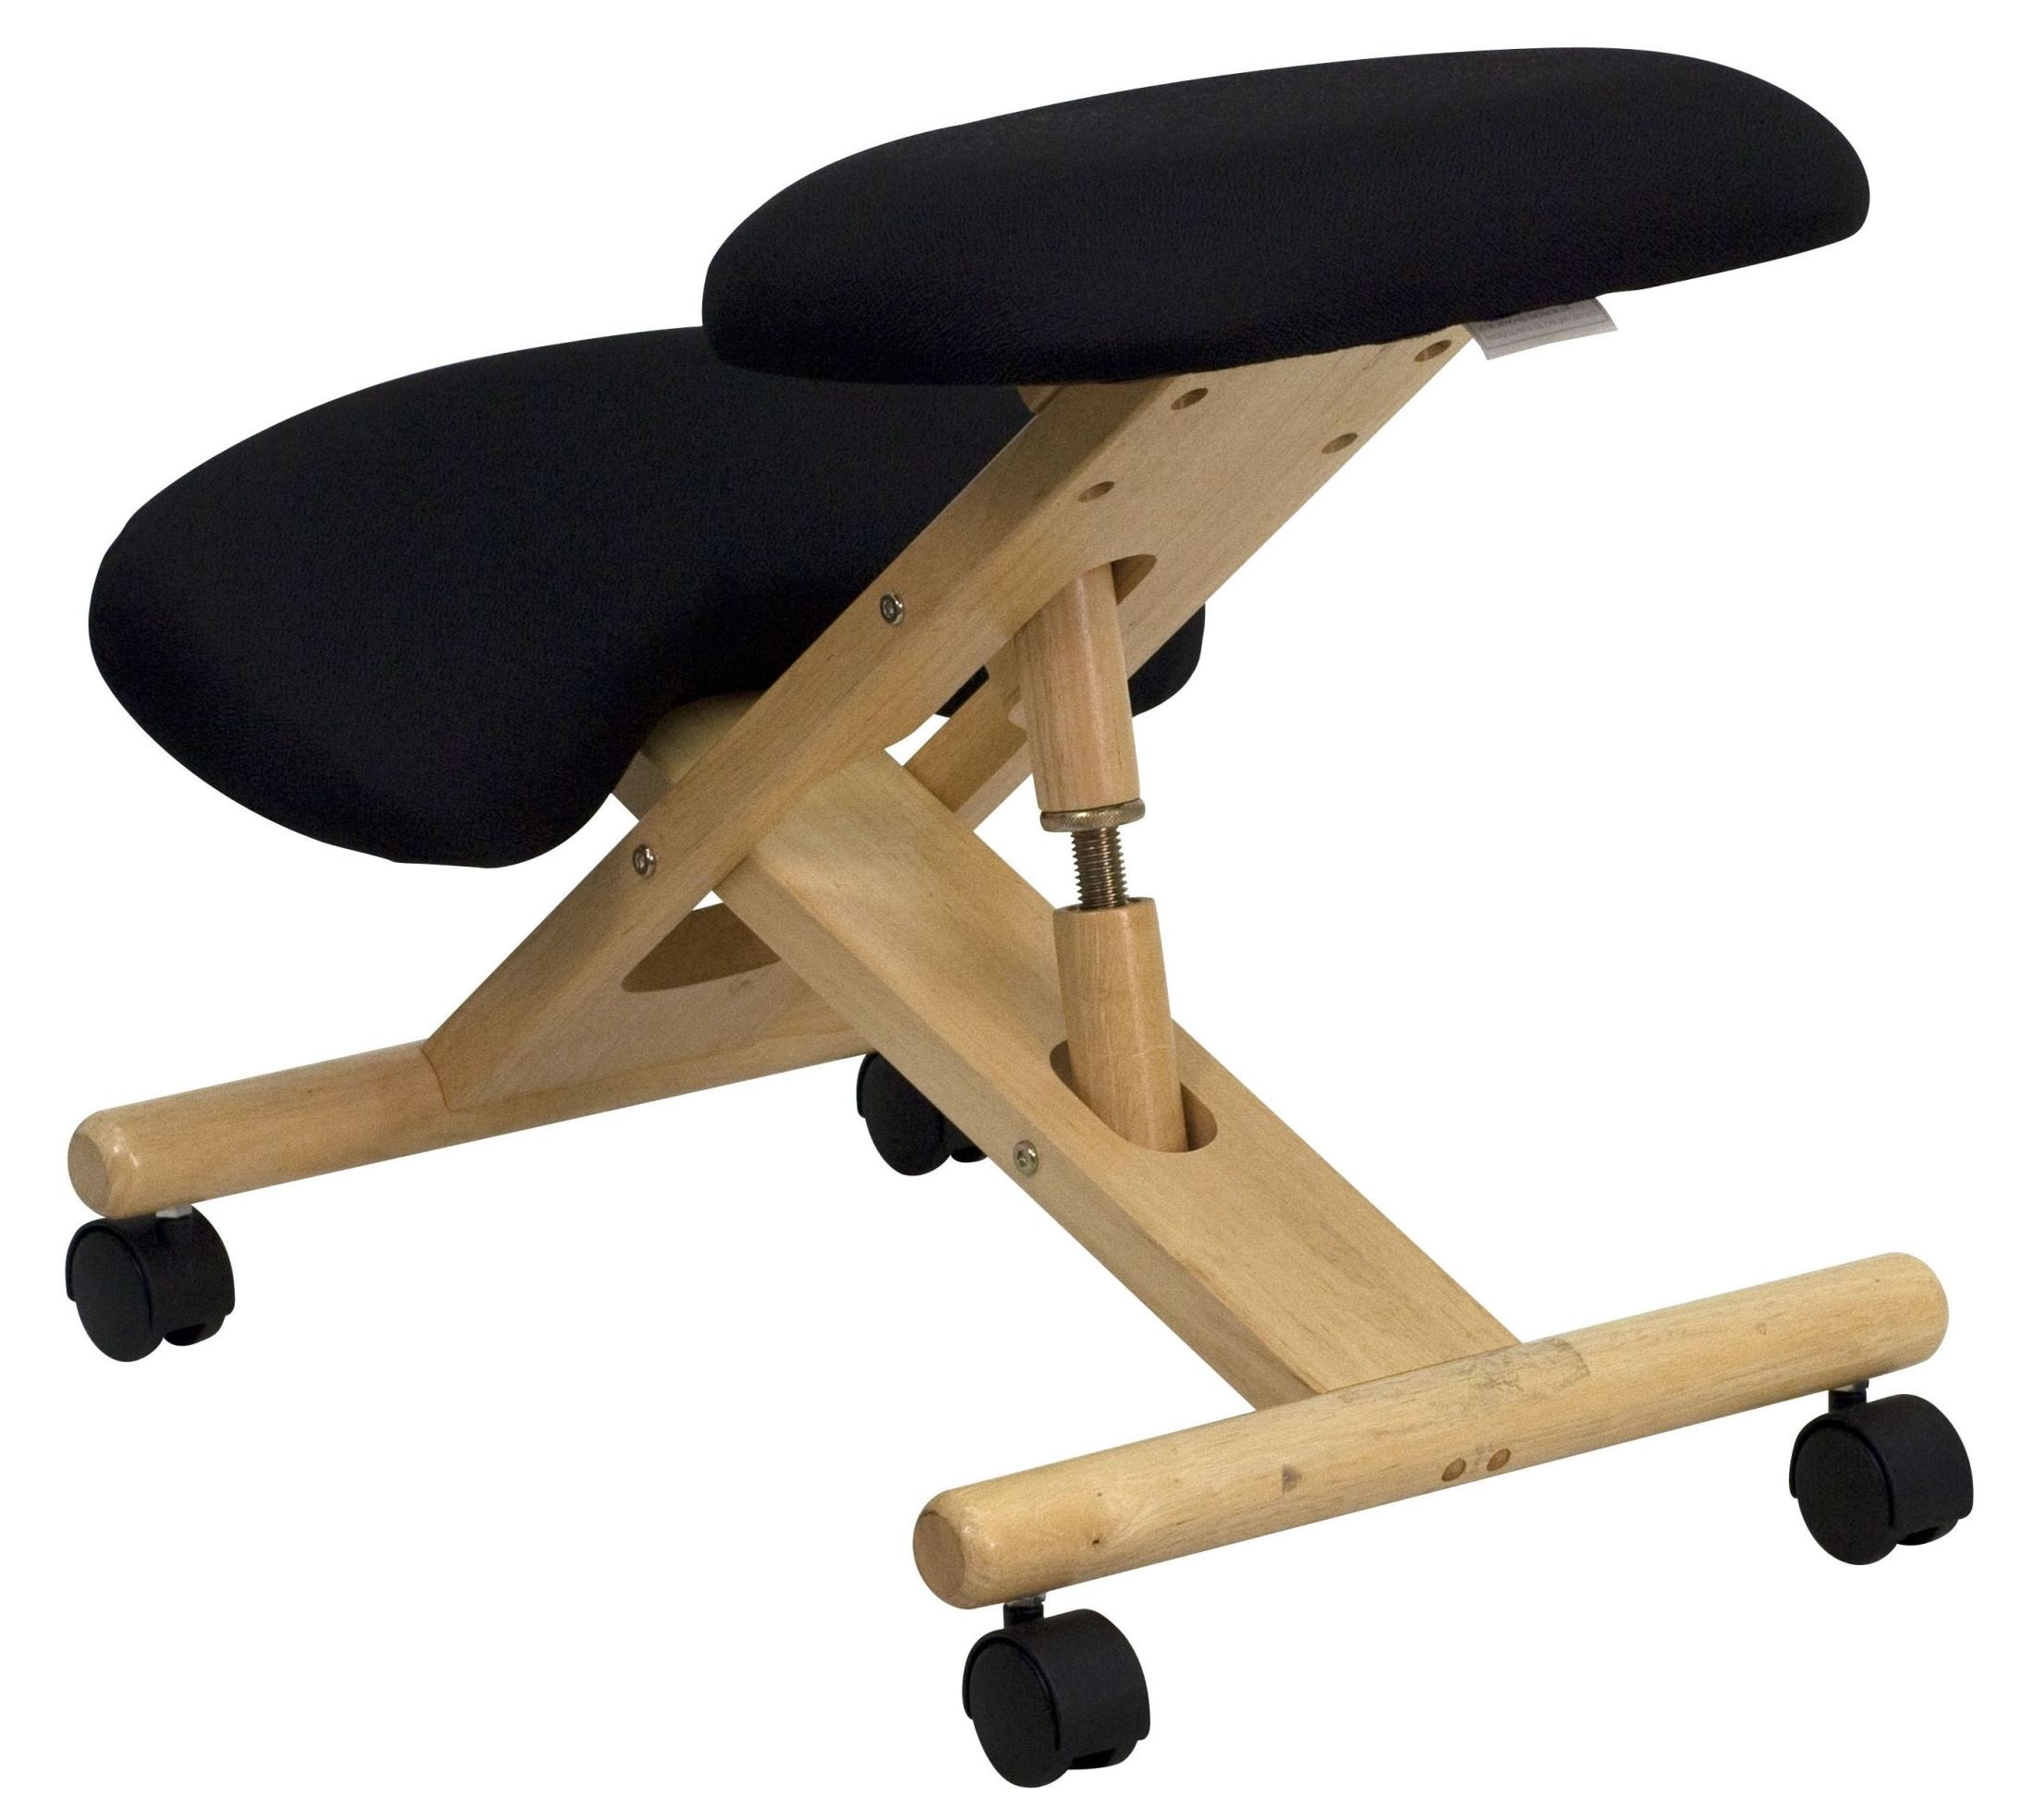 ergonomic chair kneeling review double sided mobile wooden black from renegade